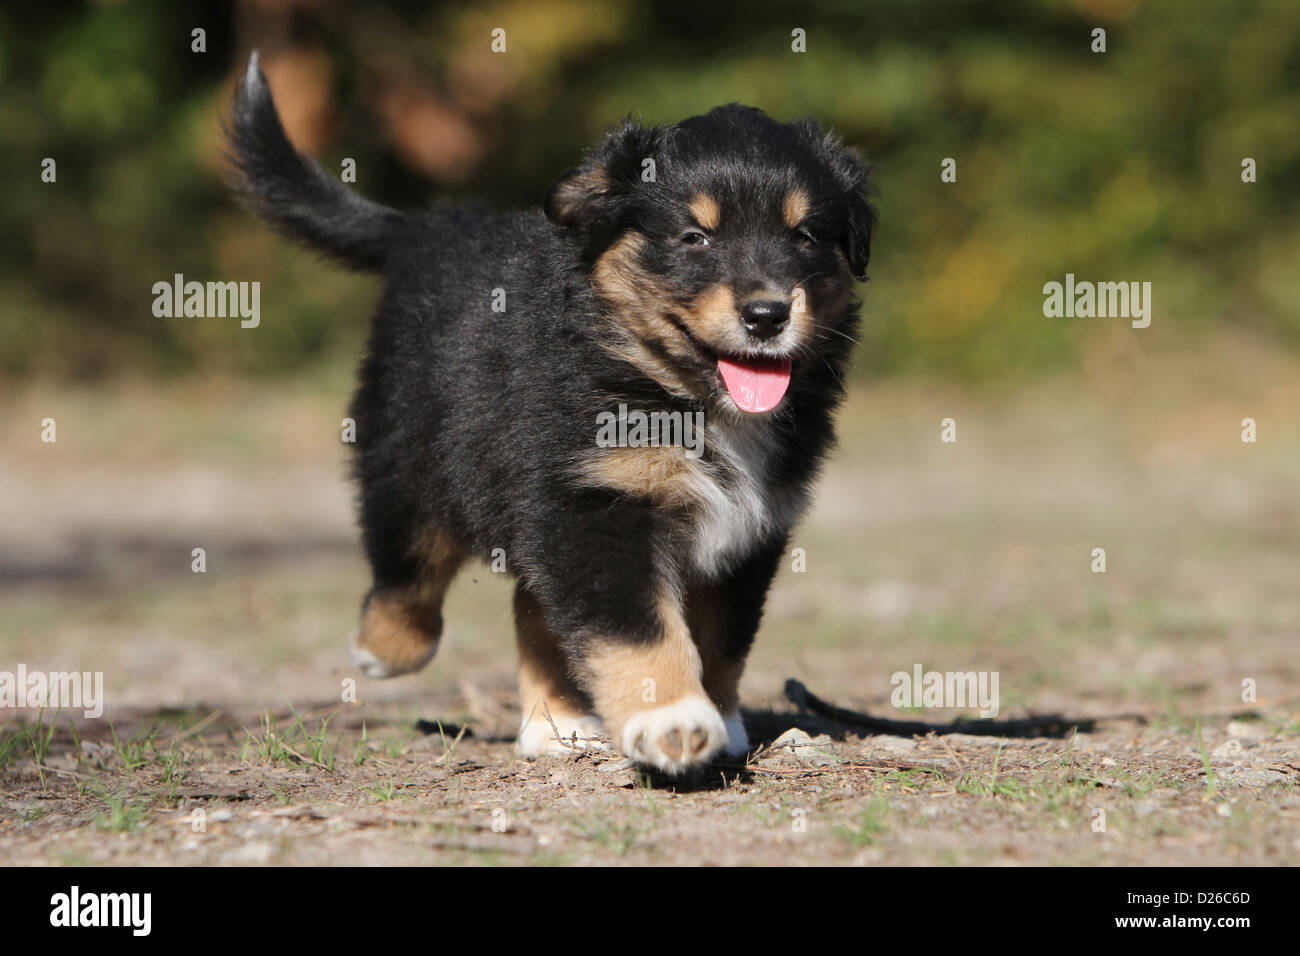 Dog Australian Shepherd Aussie Puppy Tricolor Black Running Stock Photo Alamy